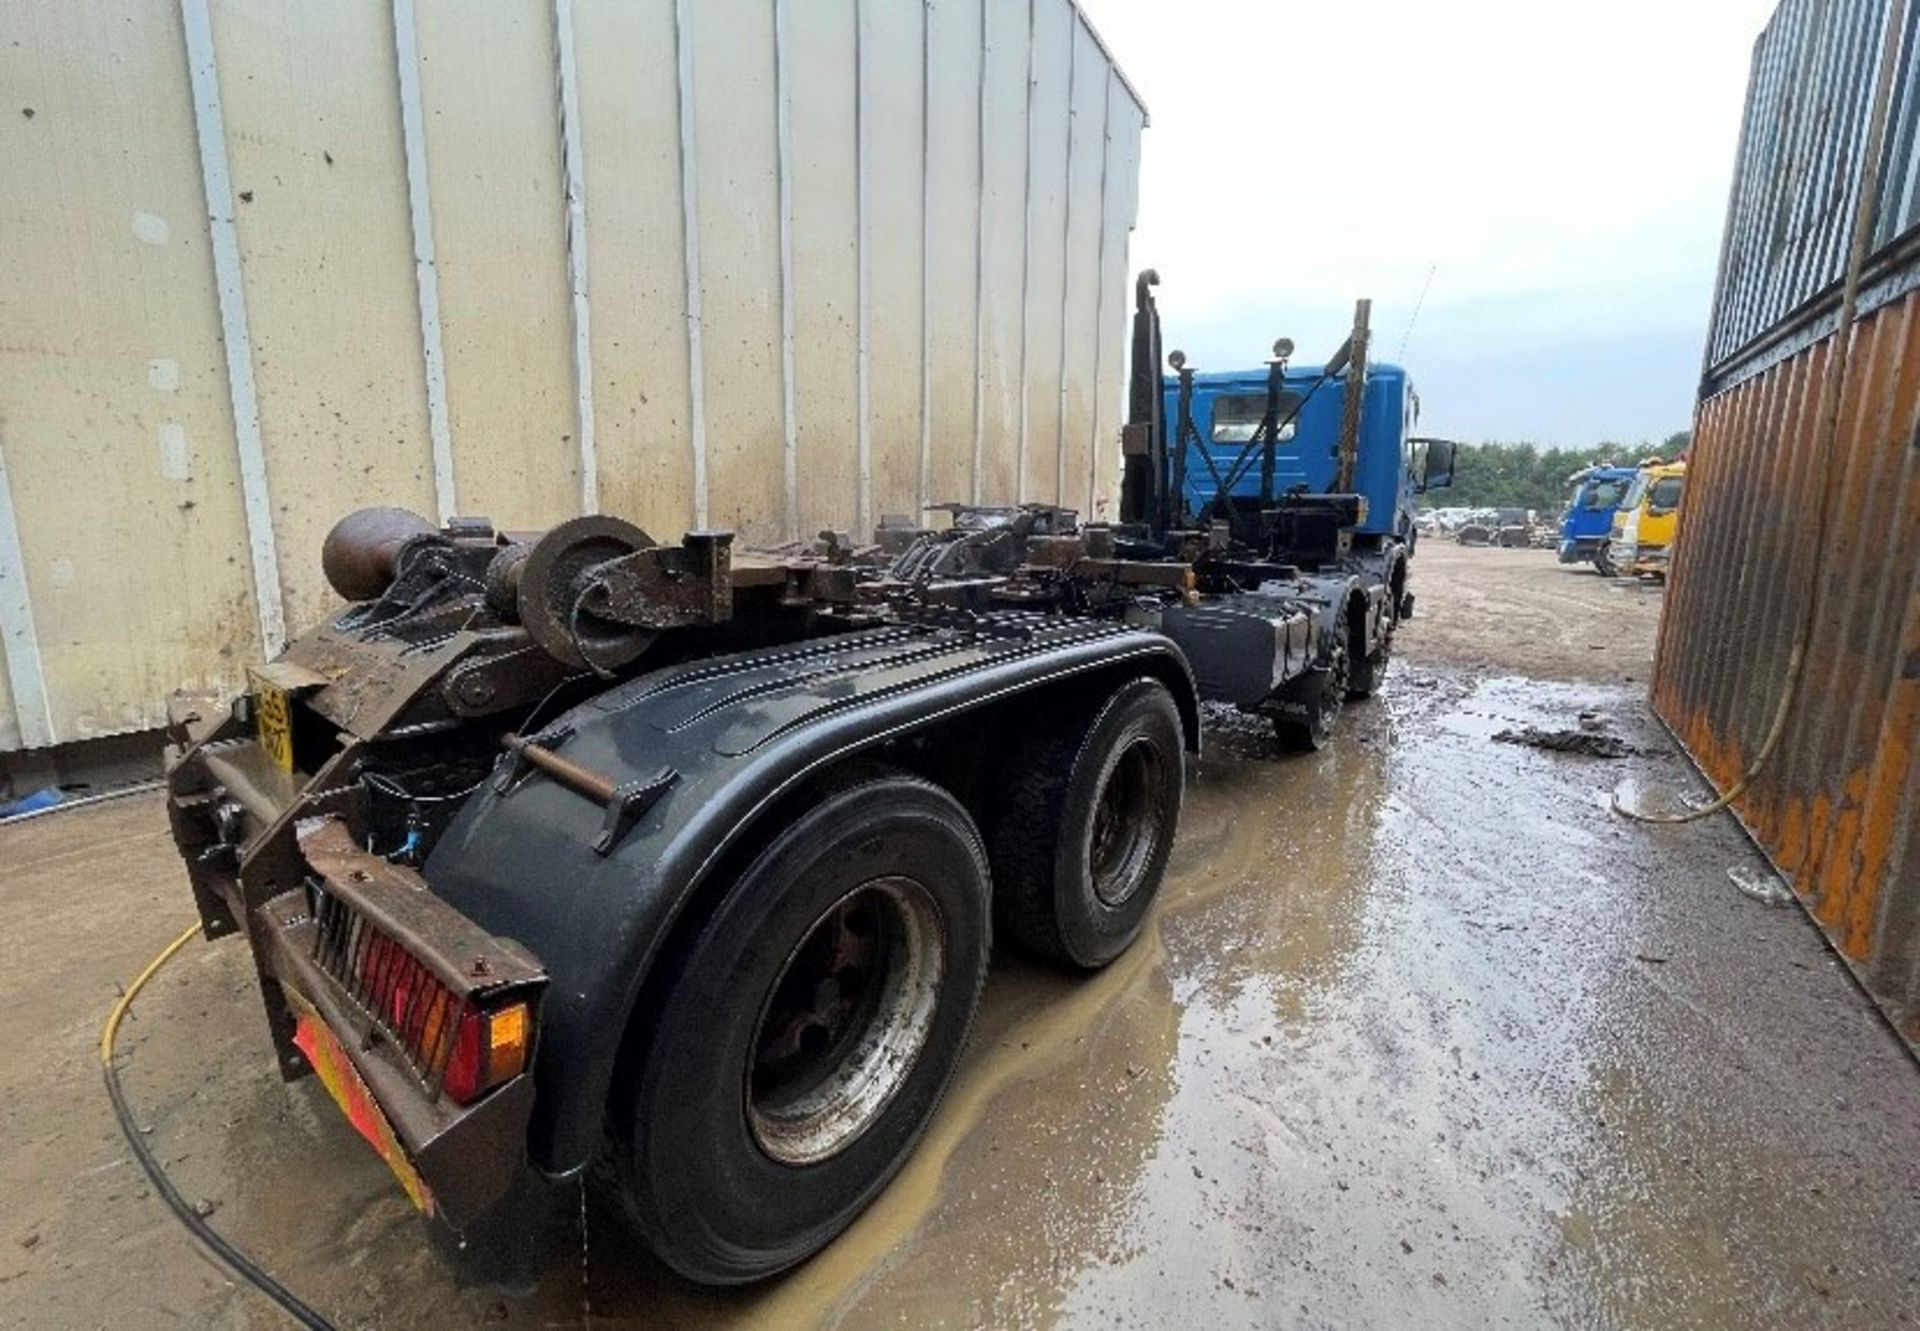 Scania P420 8x4 Hook Lift Truck, registration no. MX55 DND, date first registered 09/2005, indicated - Image 4 of 5